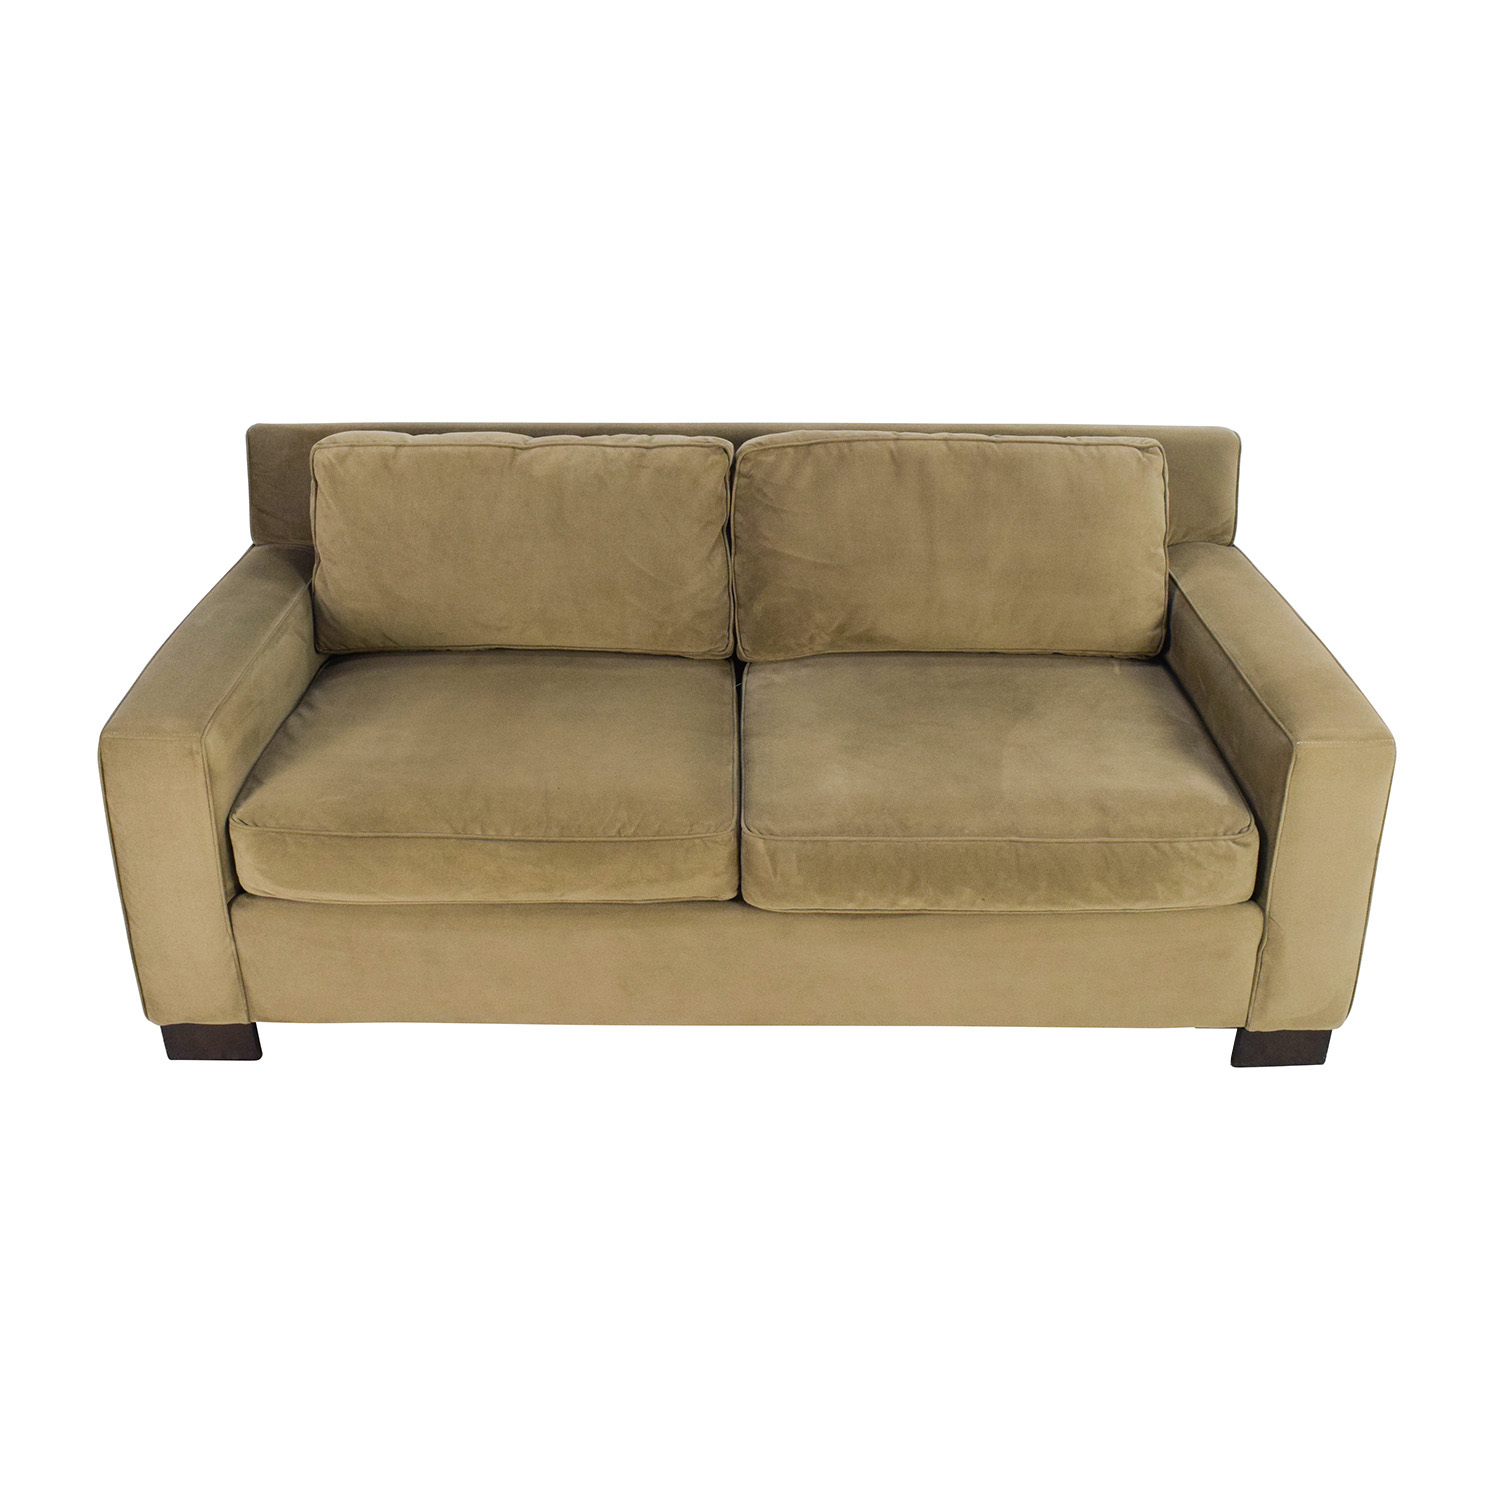 West Elm West Elm Classic Henry Beige Cushion Sofa price